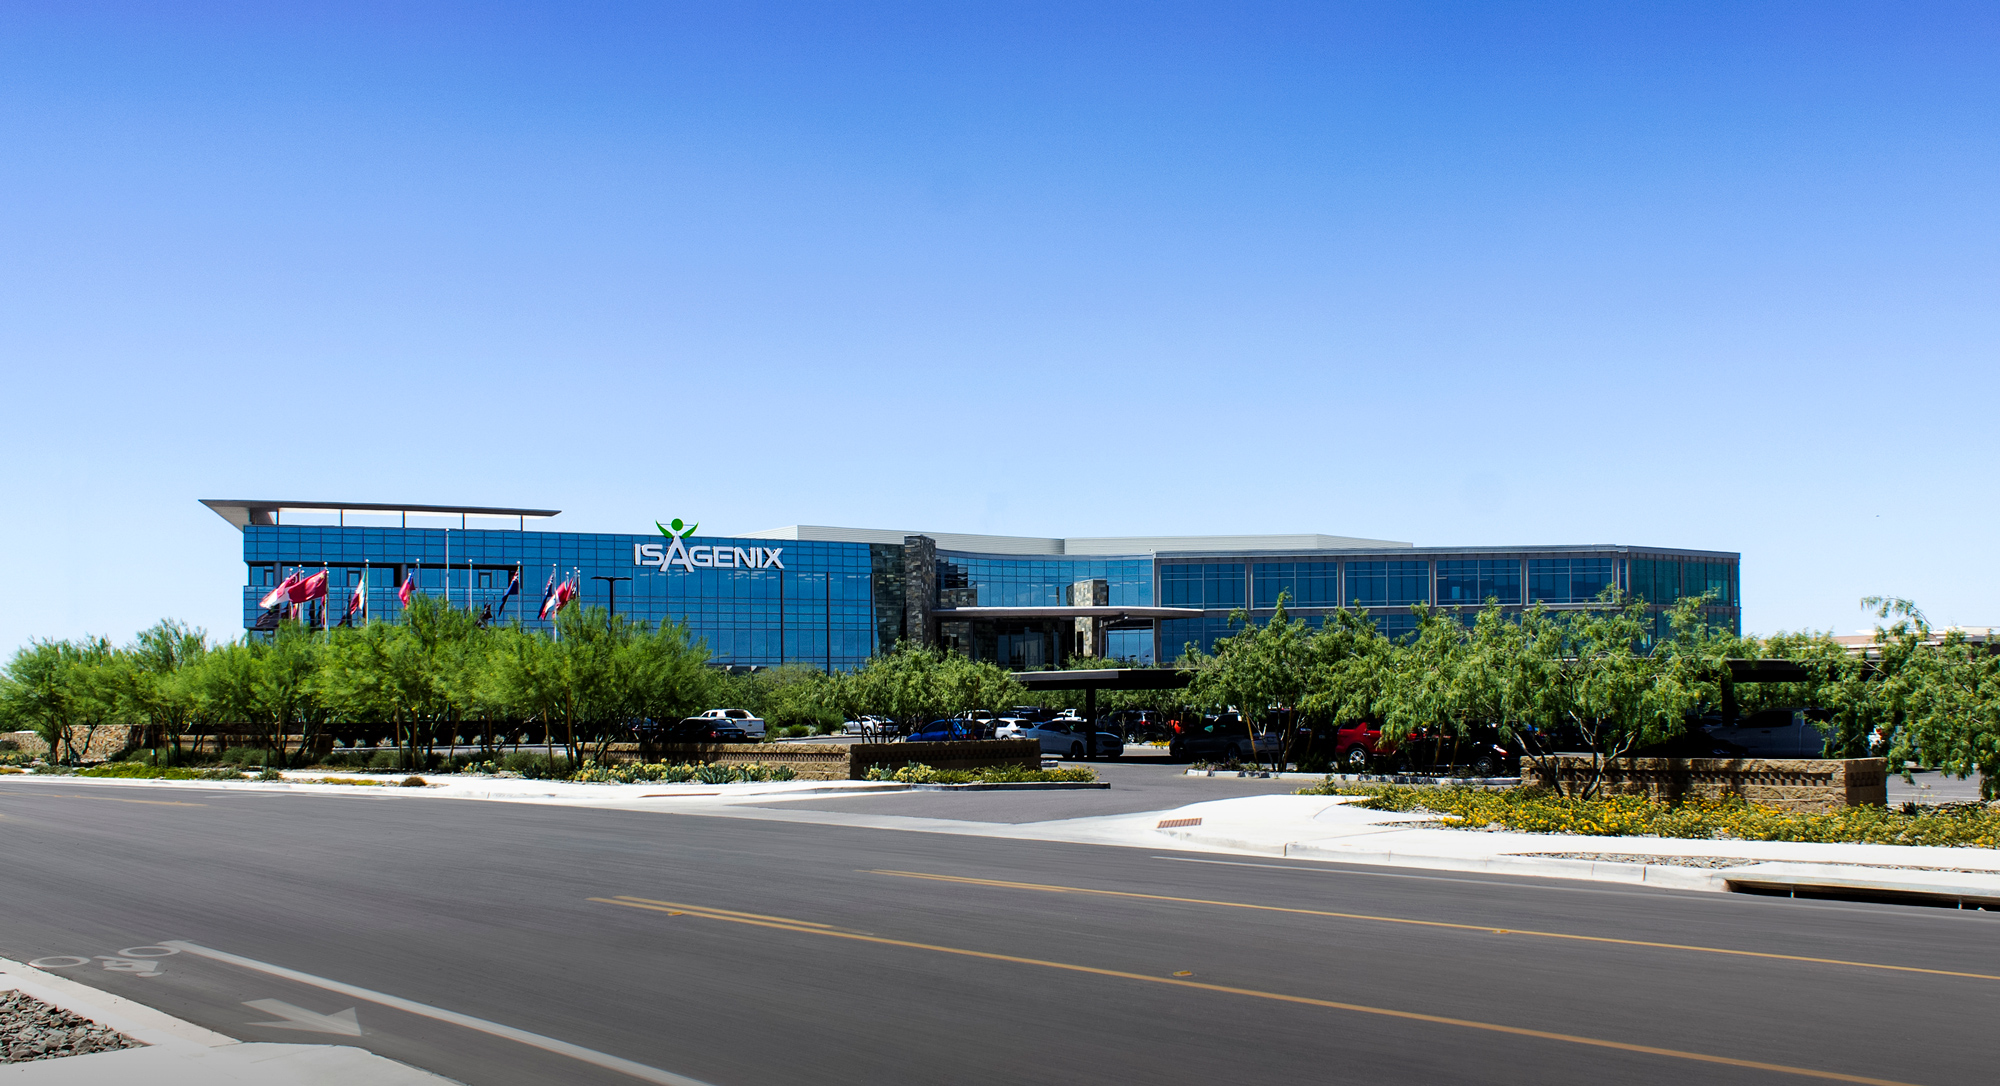 The Isagenix building top sign proudly brands the glass building.